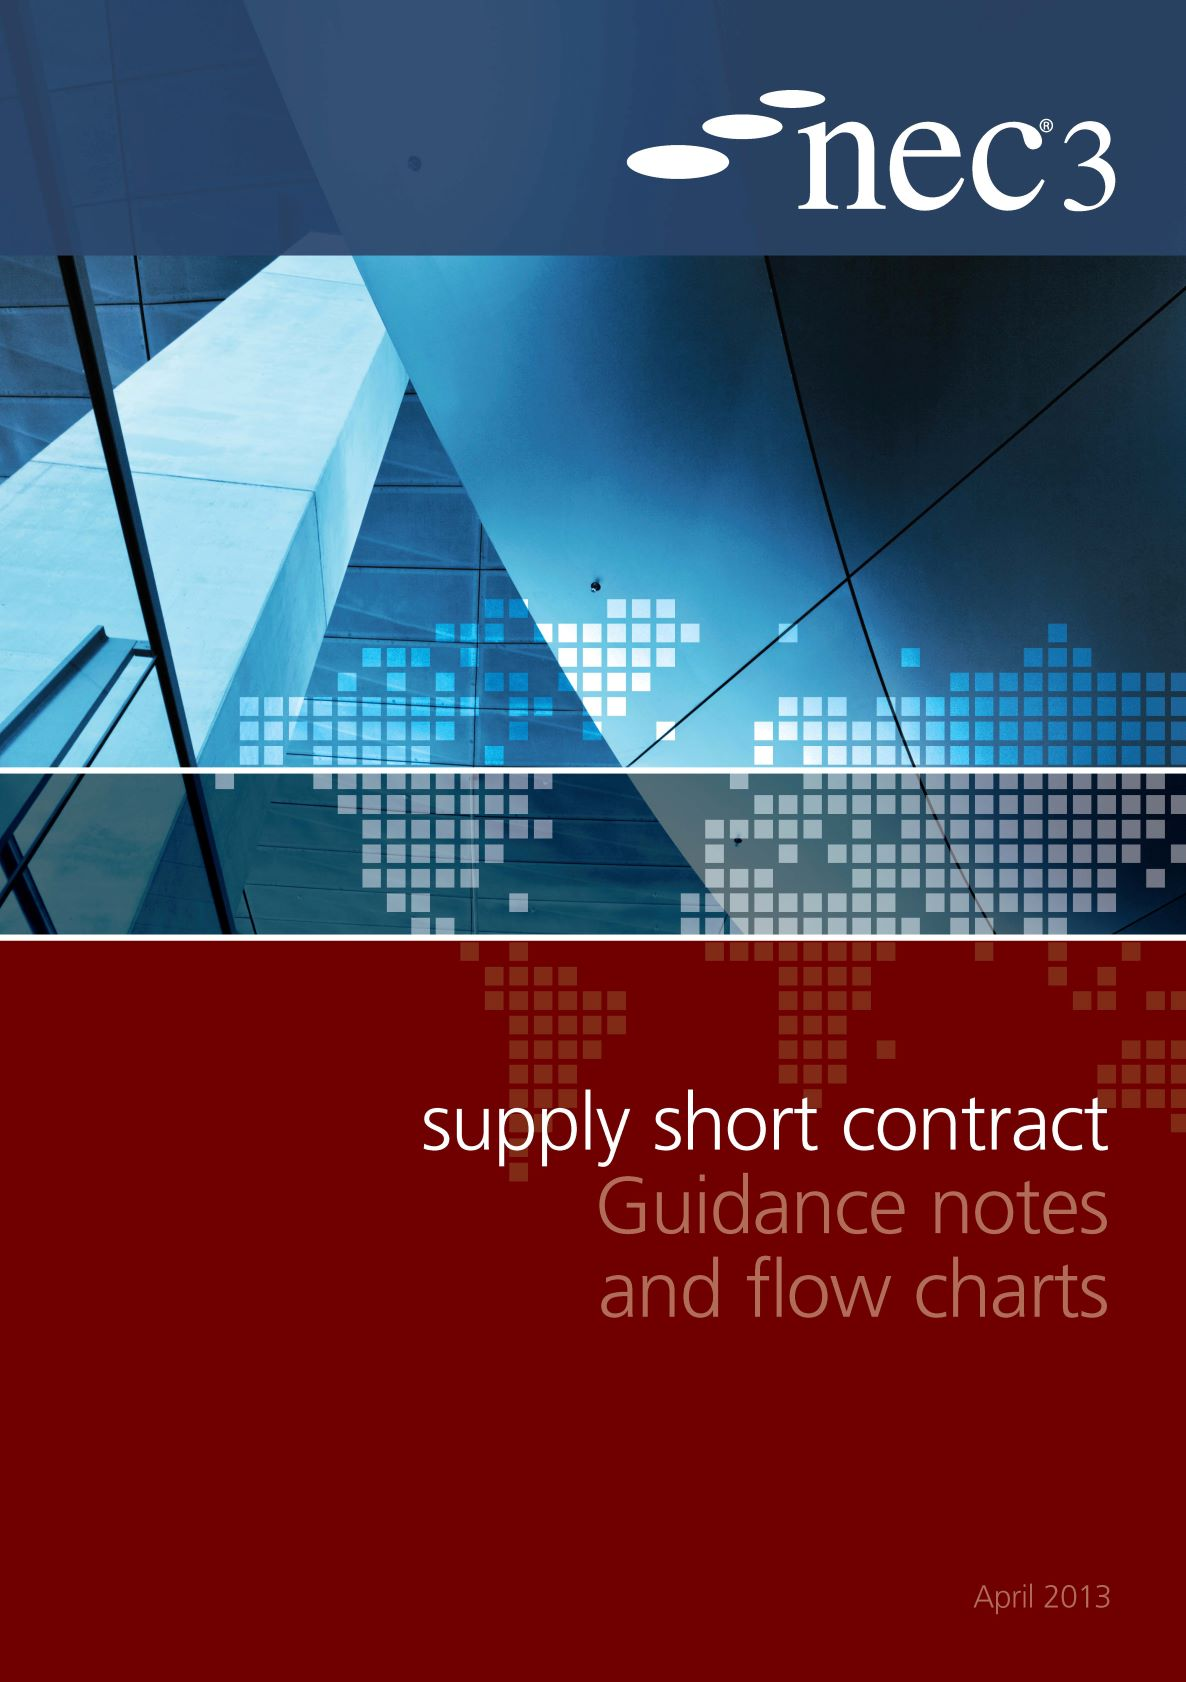 NEC3: Supply Short Contract Guidance Notes and Flow Charts